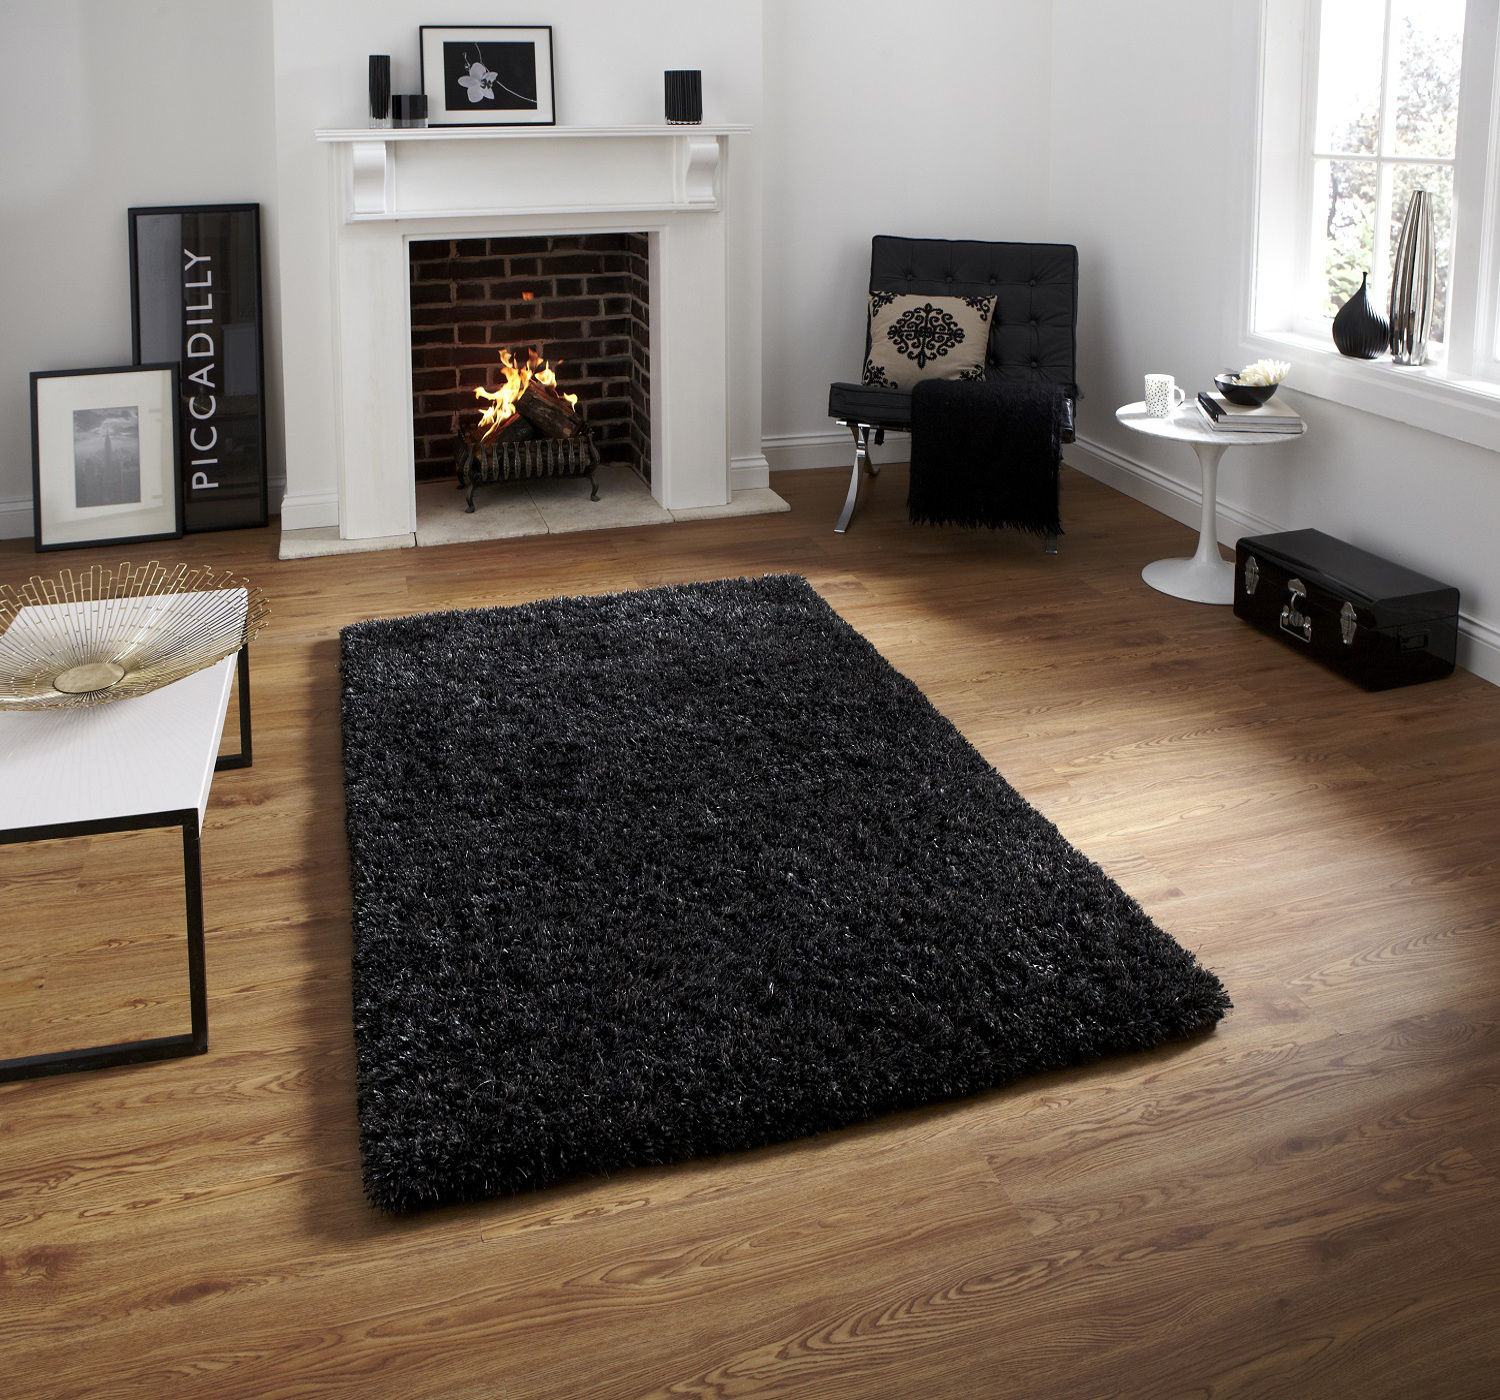 small livings rug table for living center black and room hardwood with floor floating tv rugs on near chair shelf stand media